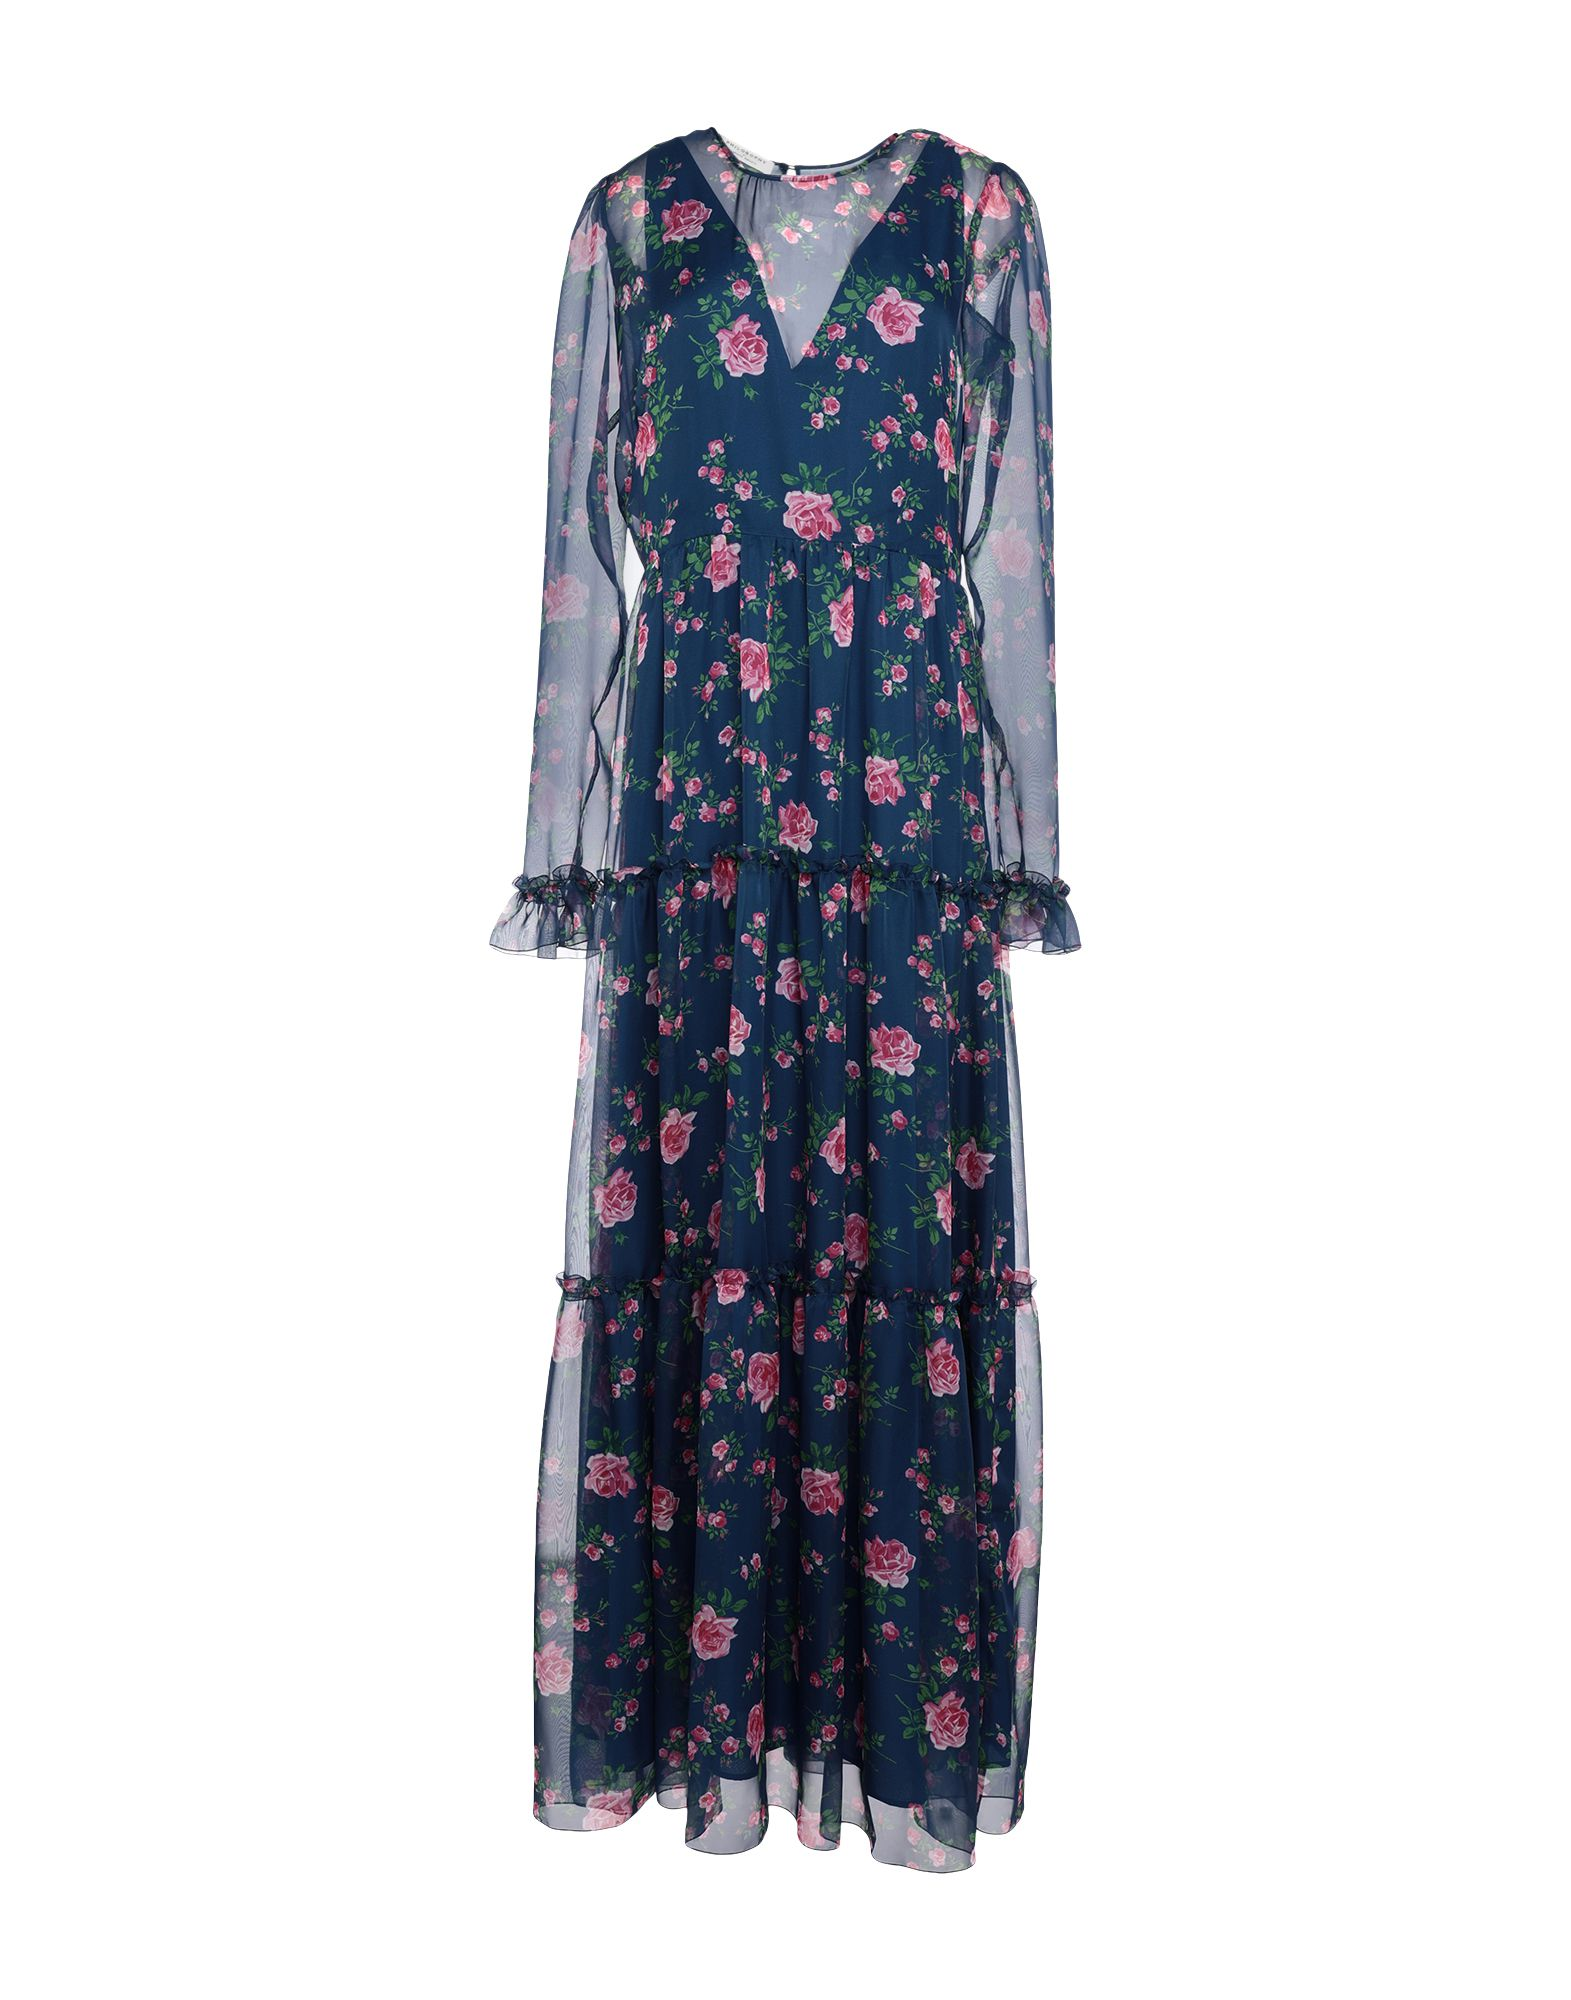 PHILOSOPHY di LORENZO SERAFINI Long dresses. crepe, no appliqués, floral design, round collar, long sleeves, no pockets, side closure, zipper closure, fully lined. 100% Polyester